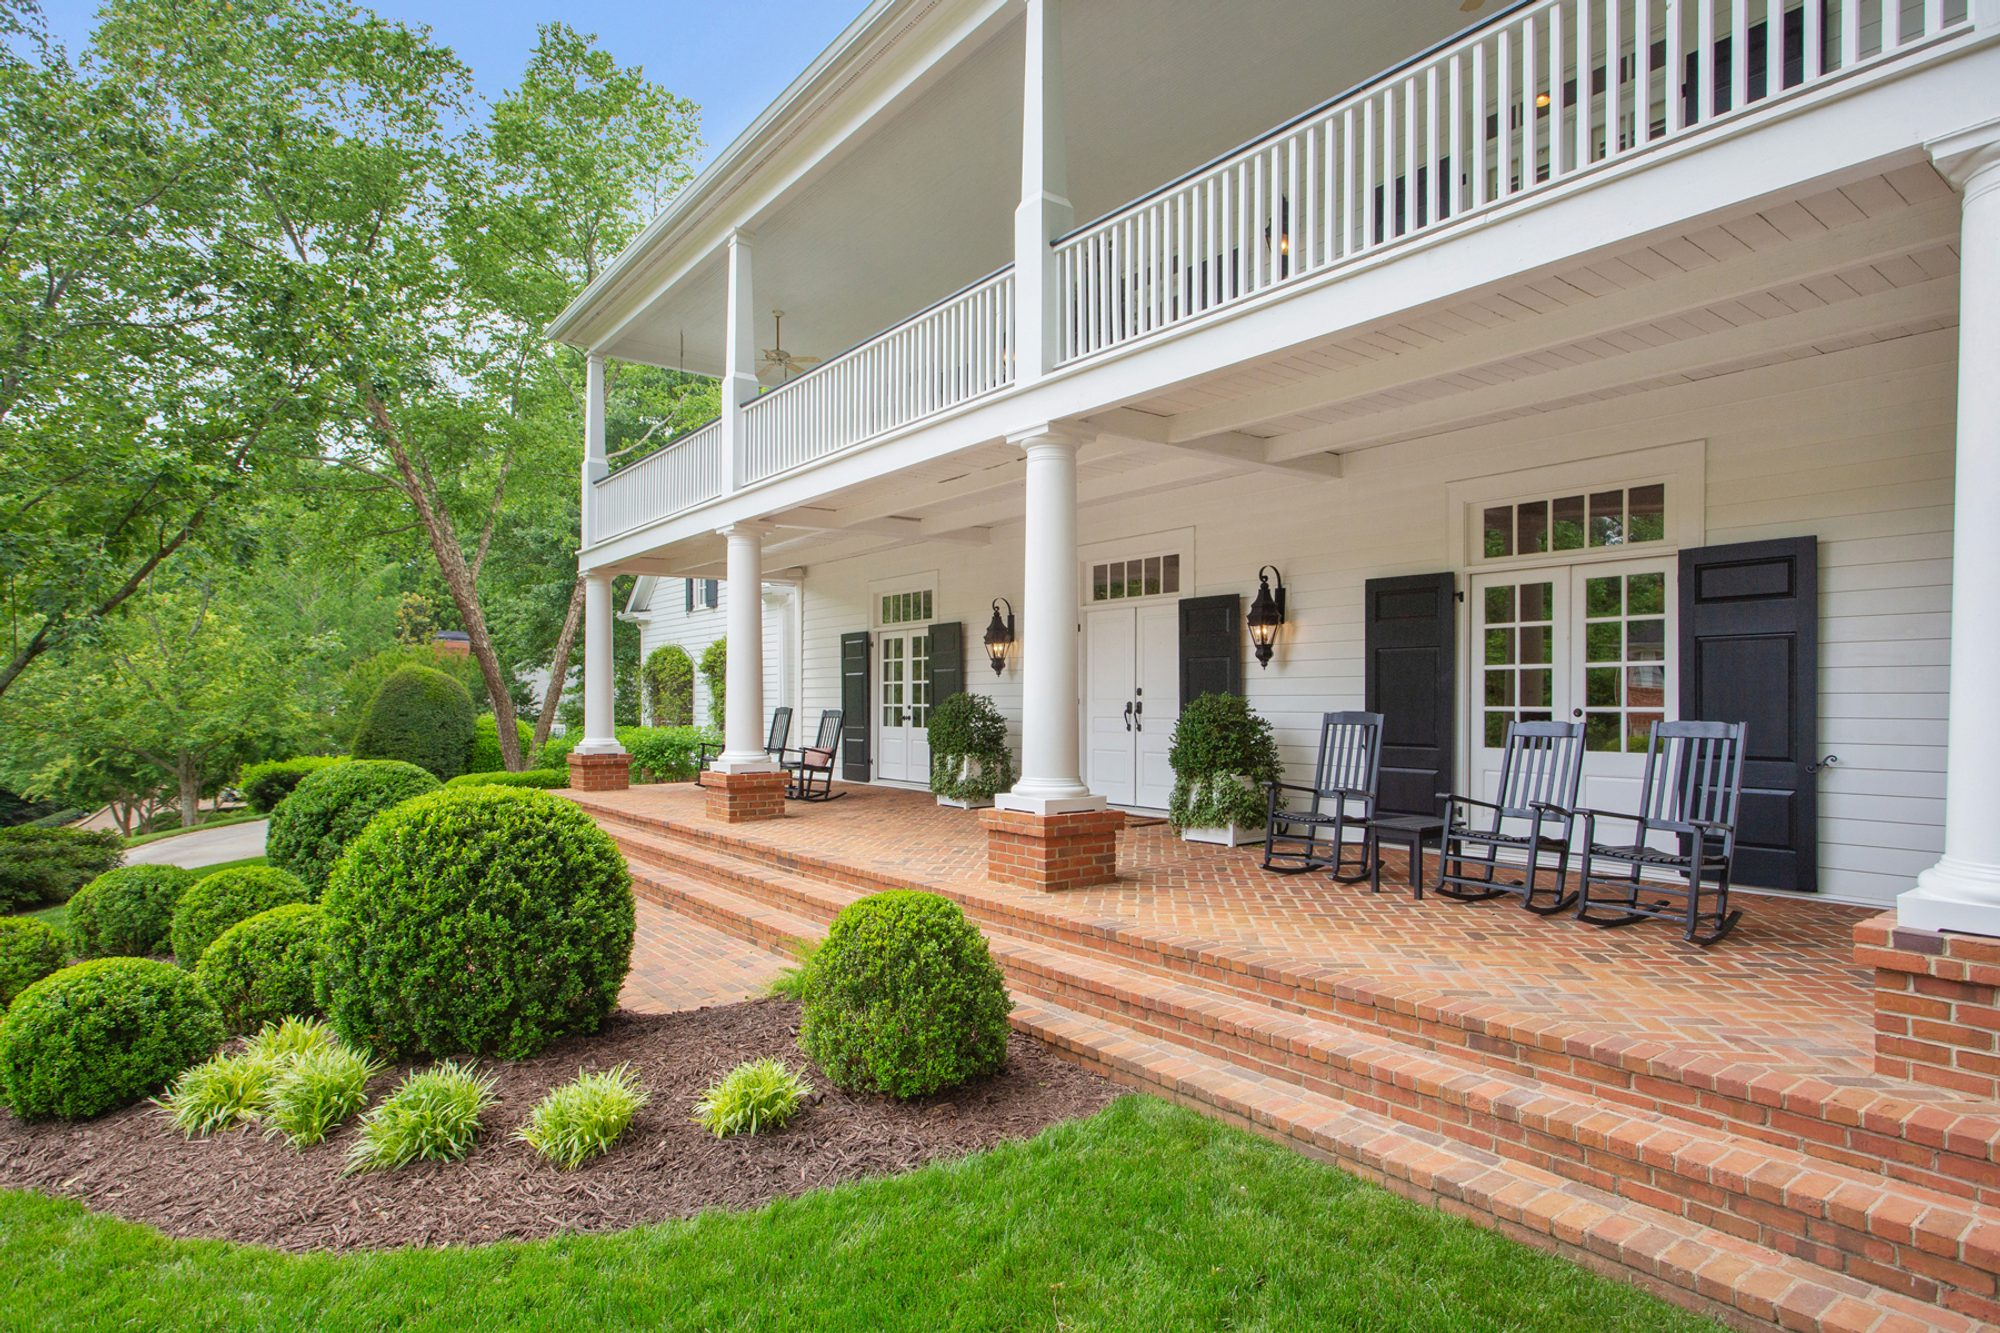 Red Brick Patio Ideas | DIY Paver Designs & Pictues on Red Paver Patio Ideas id=82651